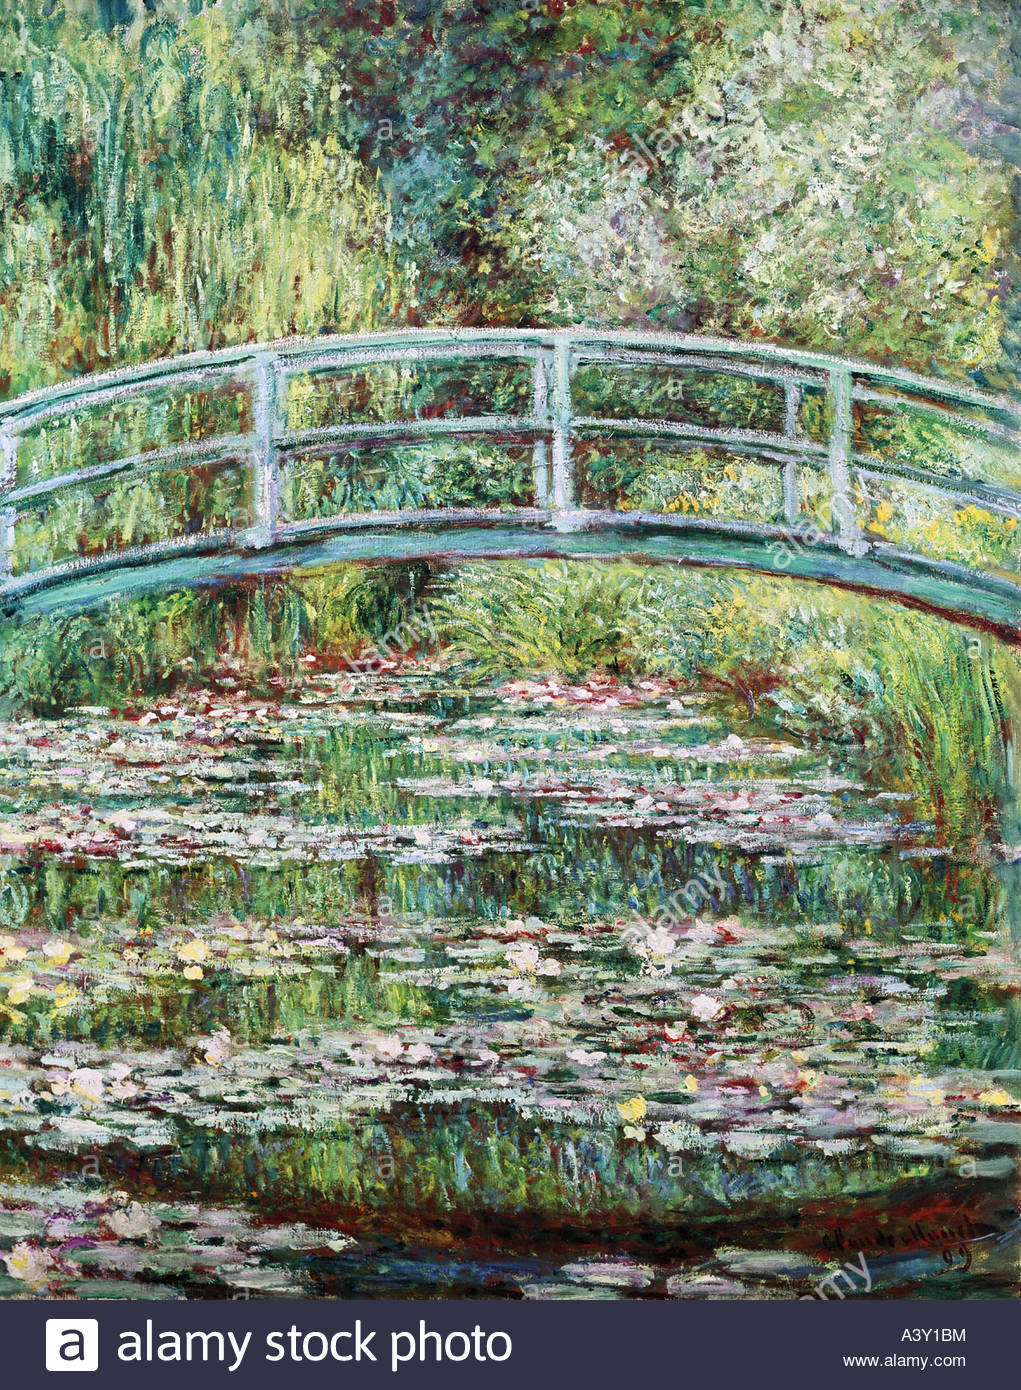 """Belle Arti, Monet, Claude, (1840 - 1926), pittura, 'Pont Japonais a Giverny', (""ponte giapponese Immagini Stock"